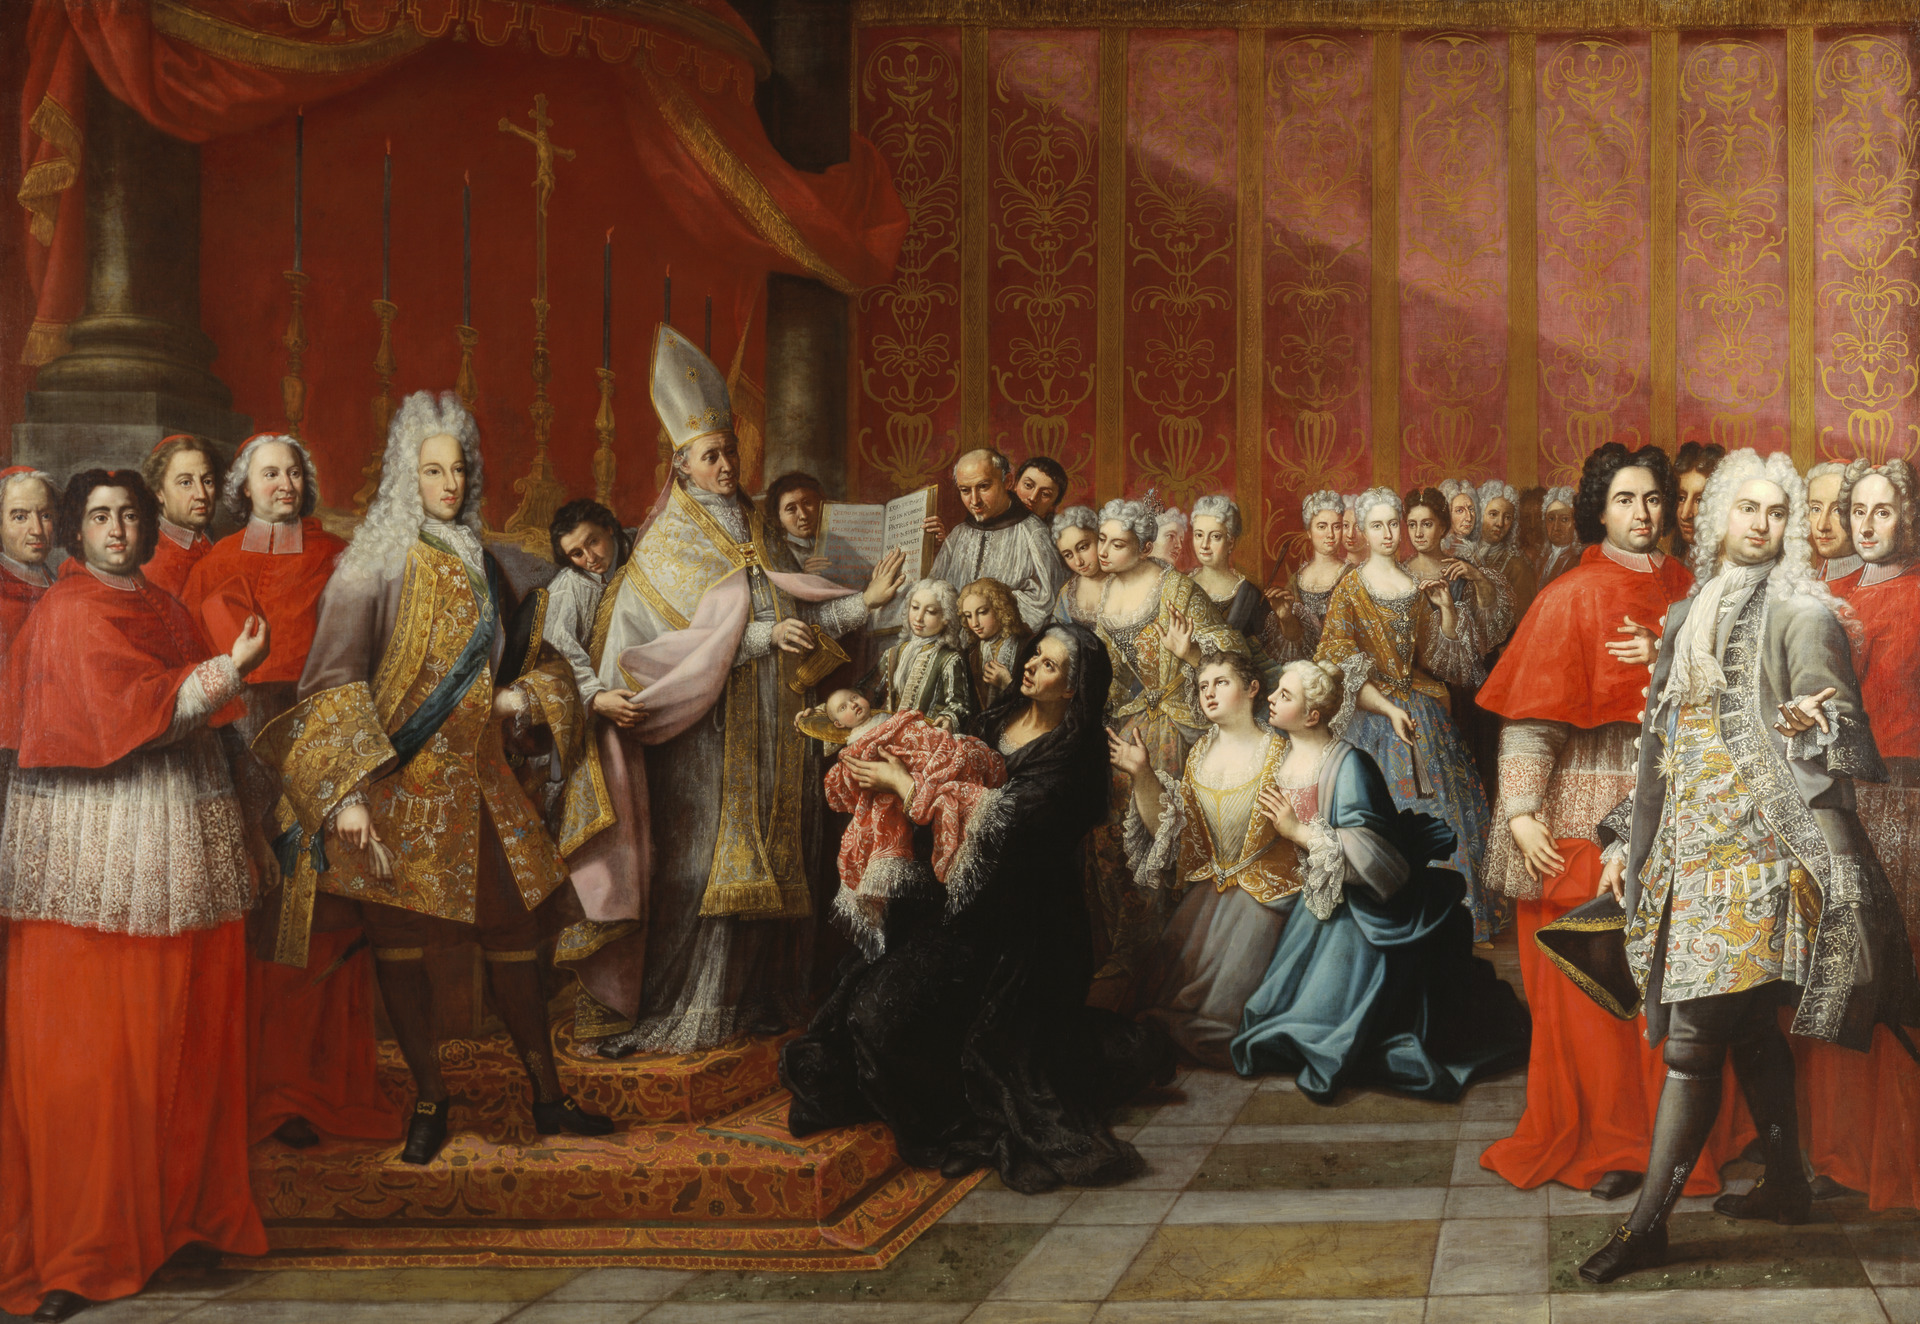 Le baptême du Prince Charles Édouard Stuart, par Antonio David, 1725 (ref. PG 2511 à la Scottish National Portrait Gallery)